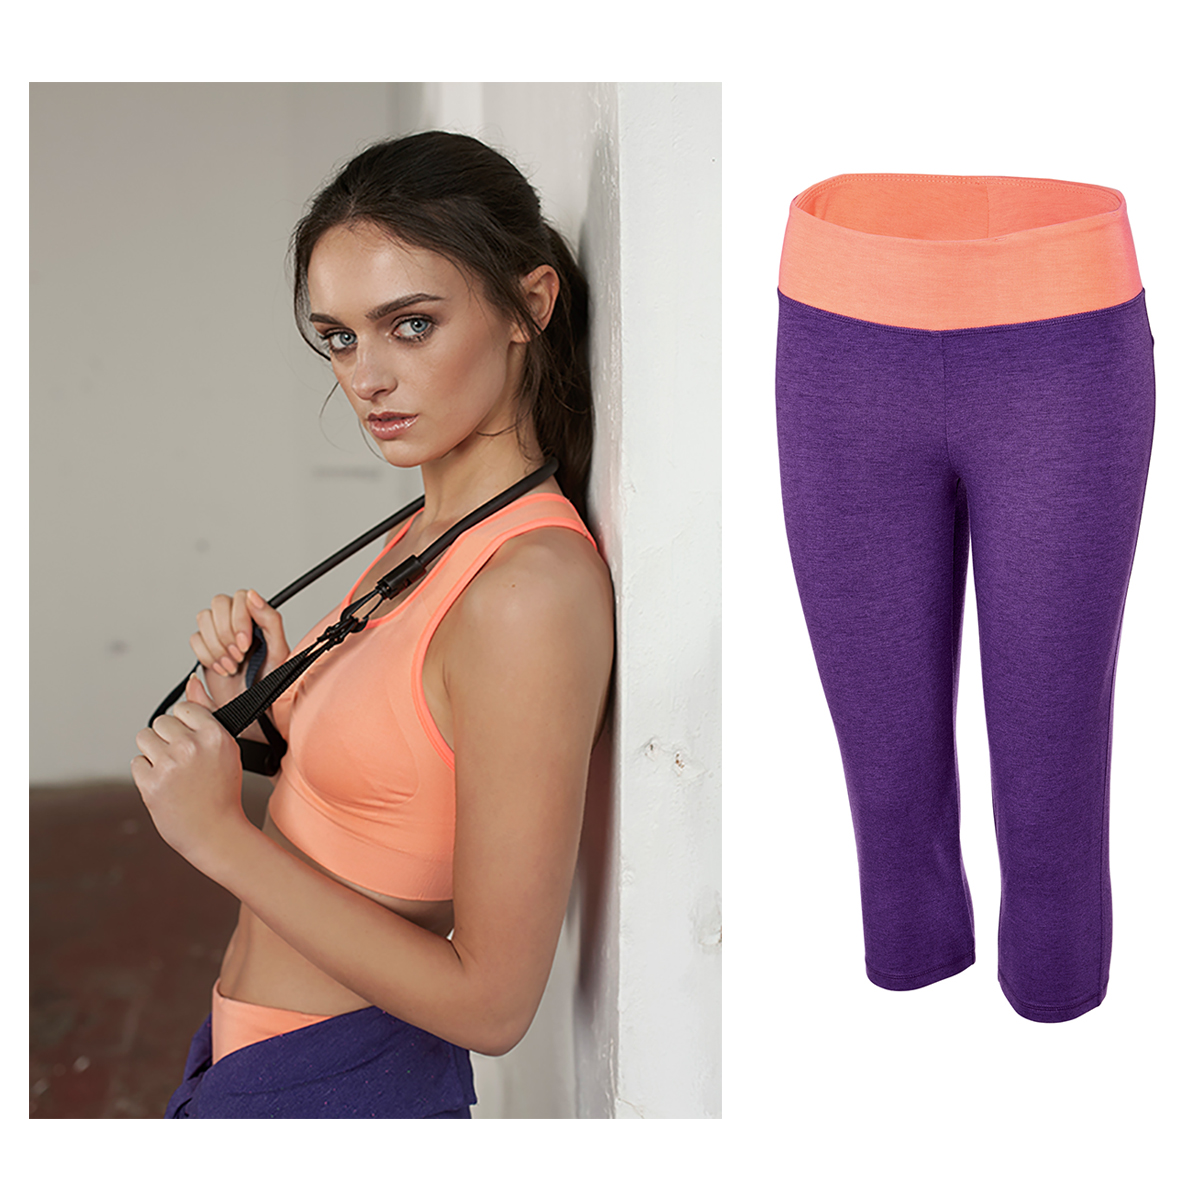 Top, €6.99. bottoms, €7.99 both available at Lidl from January 7th